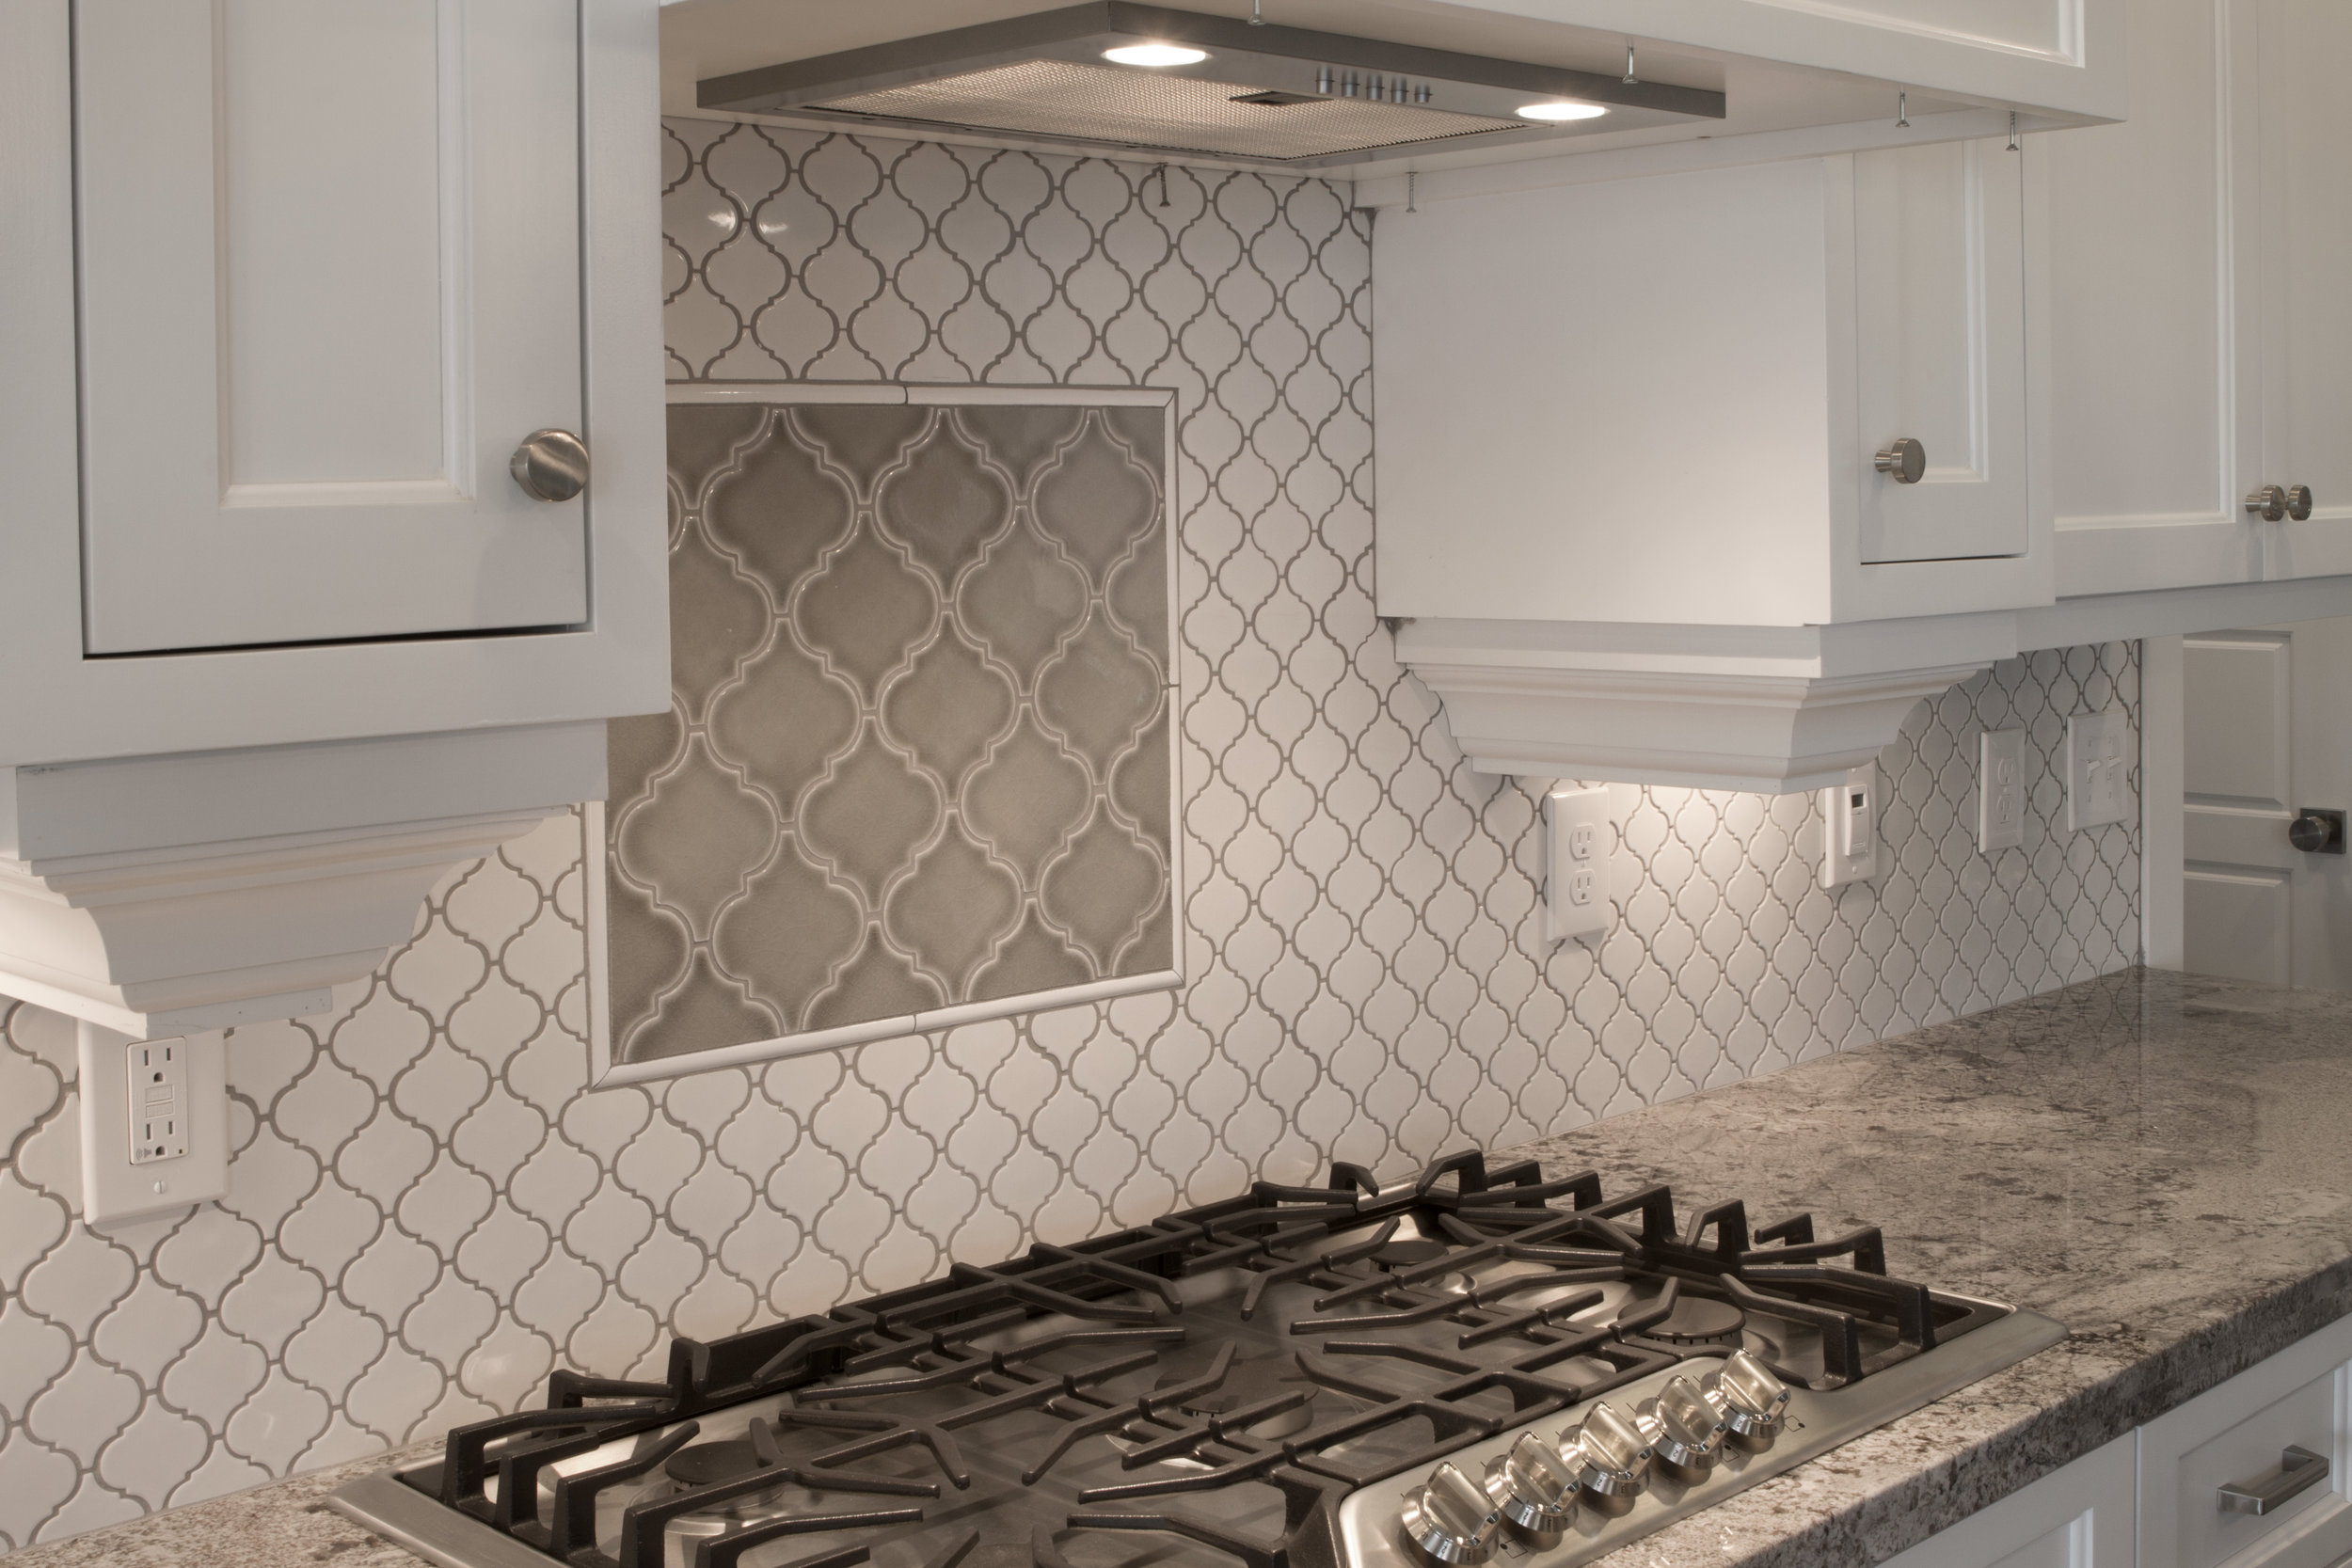 New Kitchen Bathroom Tile Backsplash Installation Rigby 5 Star